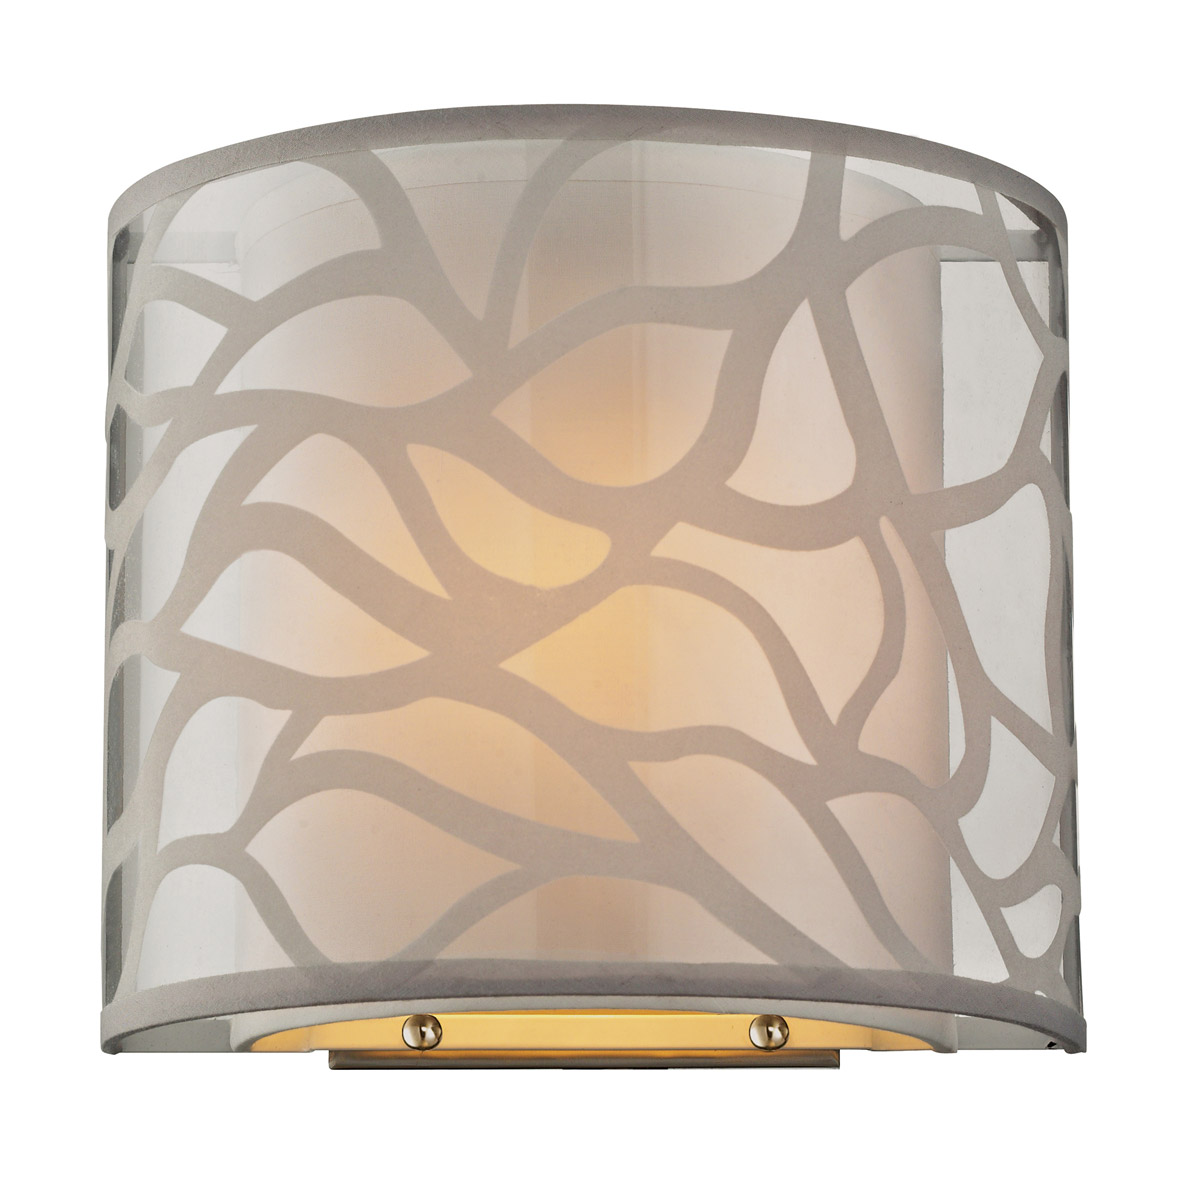 ELK Lighting Autumn Breeze 53002 Wall Sconces for Sale Brooklyn,New York - Accentuations Brand